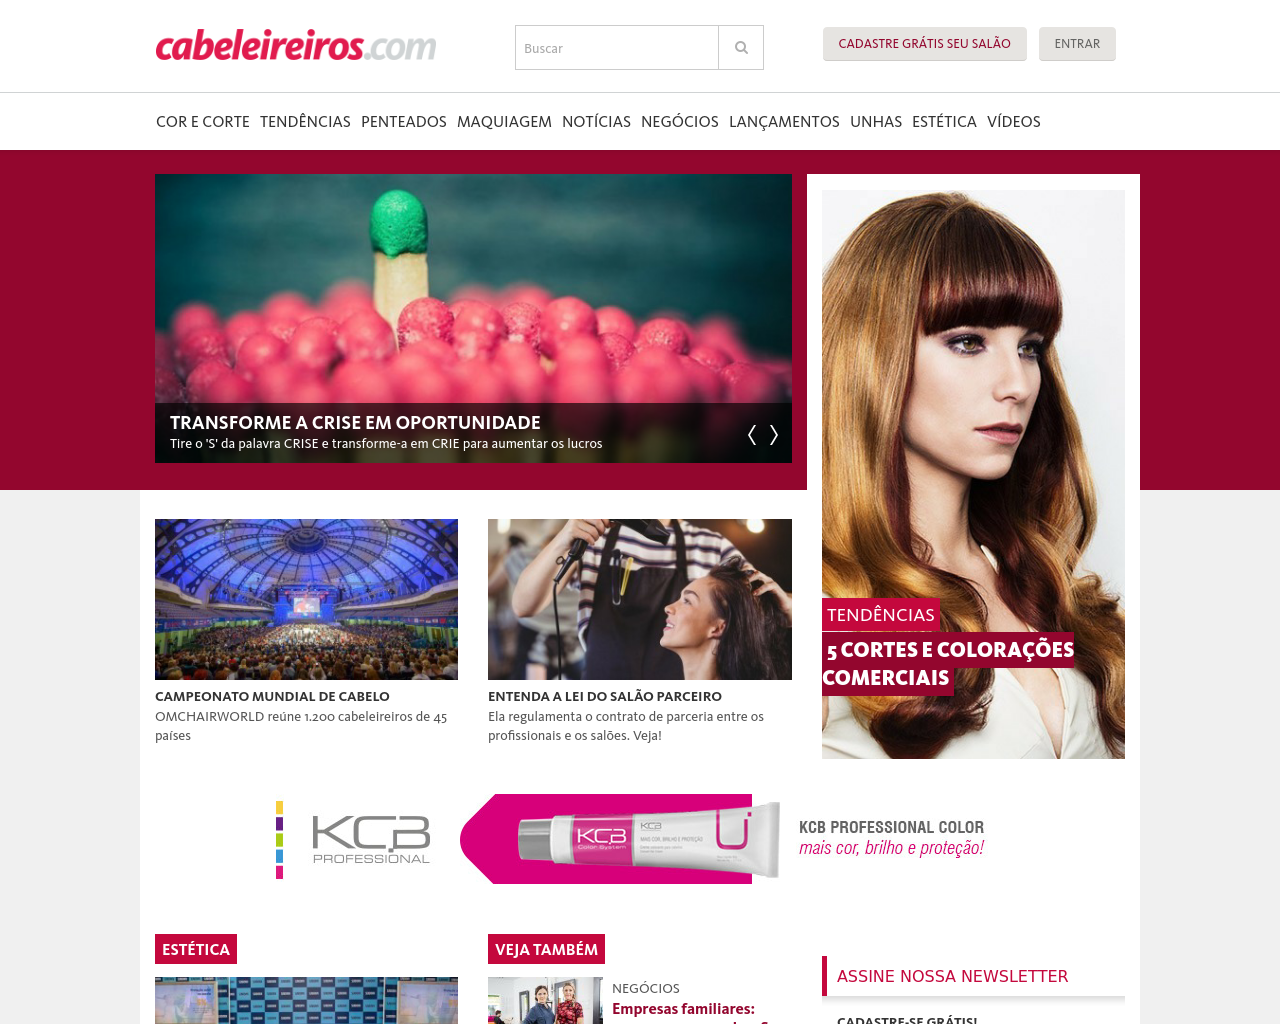 cabeleireiros.com-Advertising-Reviews-Pricing